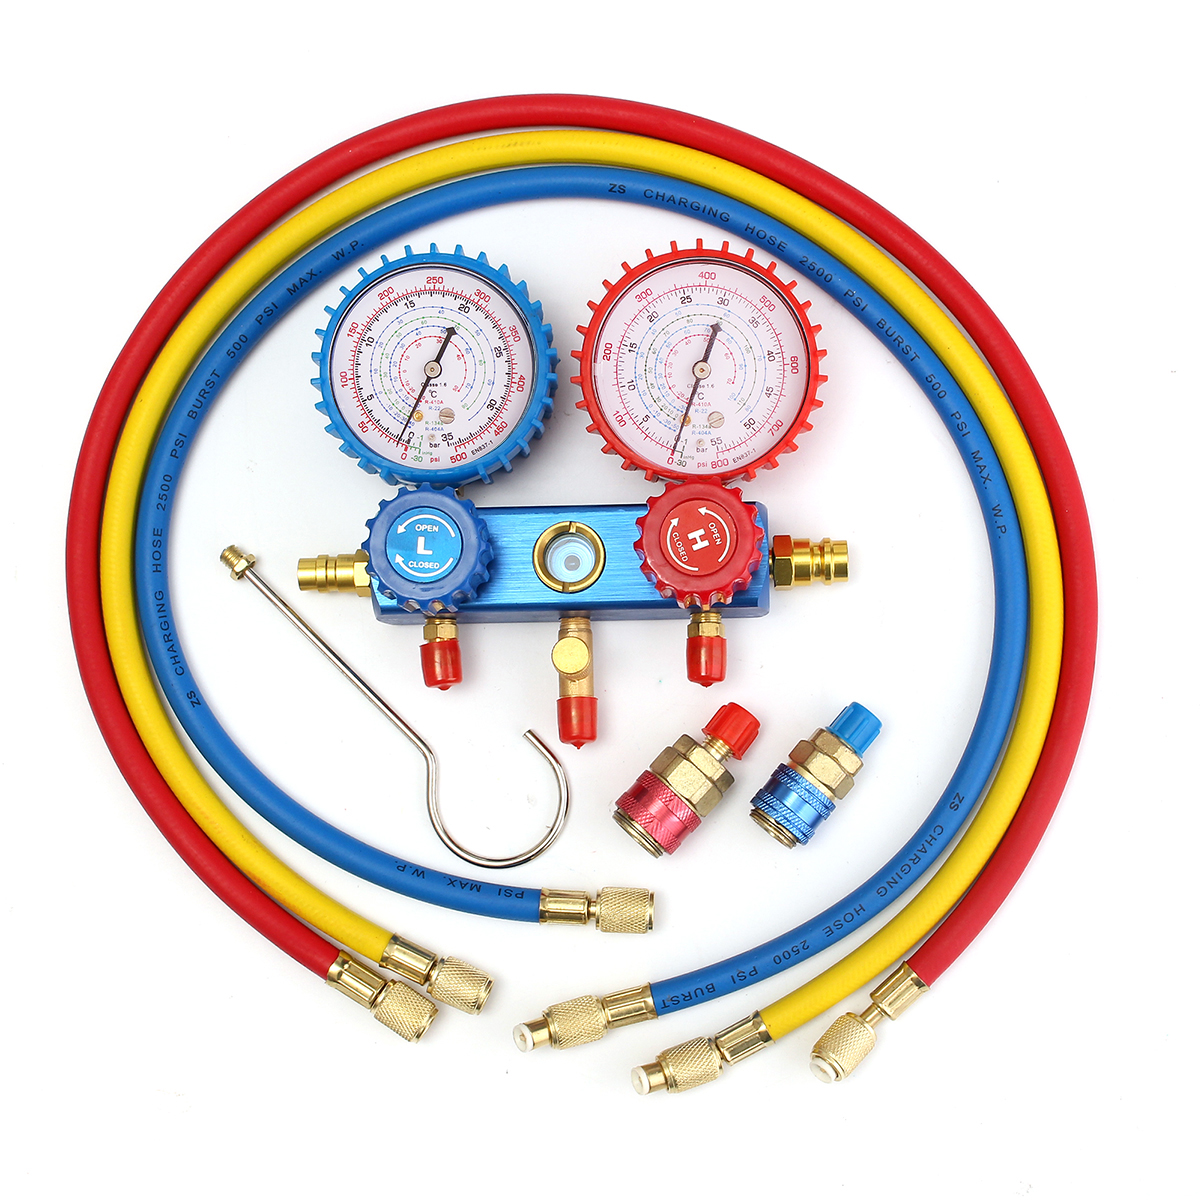 лучшая цена Manifold Gauge Set A/C R134A with 2 Quick Coupler Cable Set for R134A Air-conditioning Refrigeration Auto Manifold Gauge